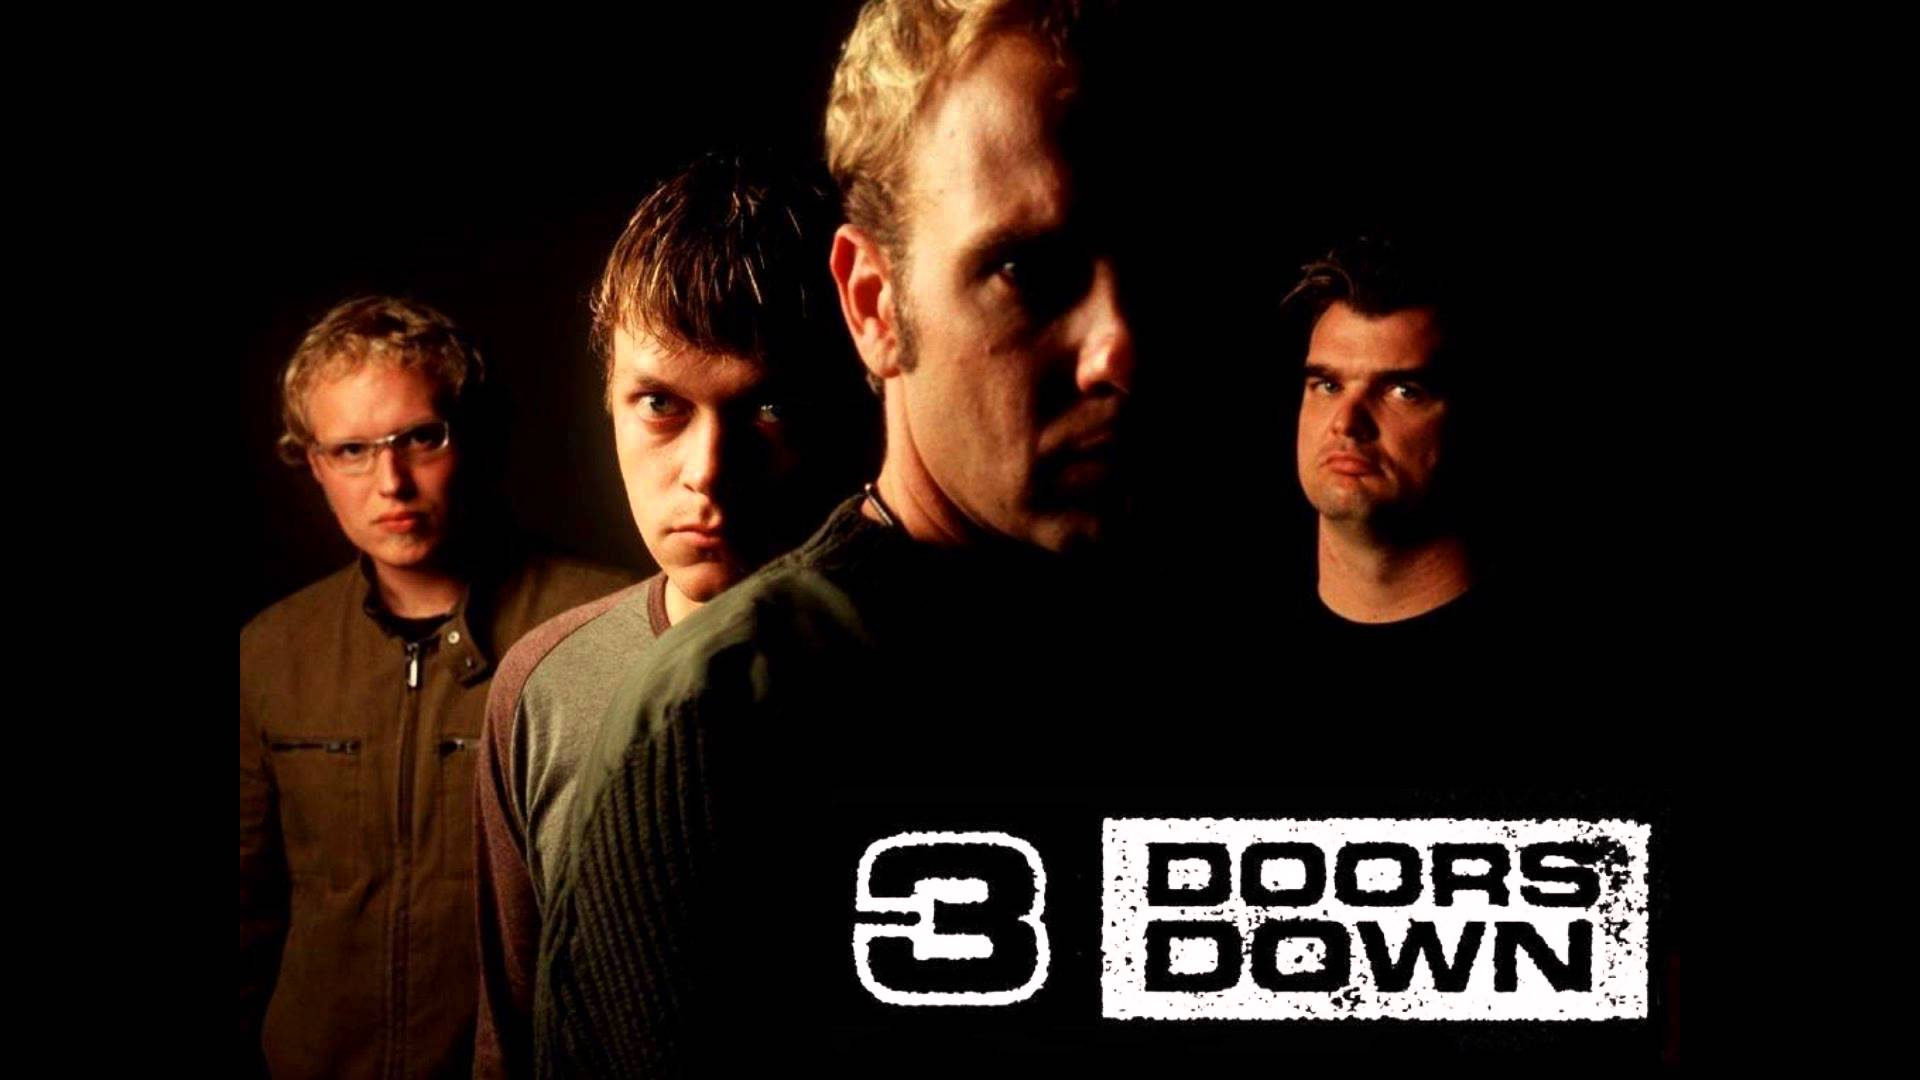 3 Doors Down Wallpapers High Quality